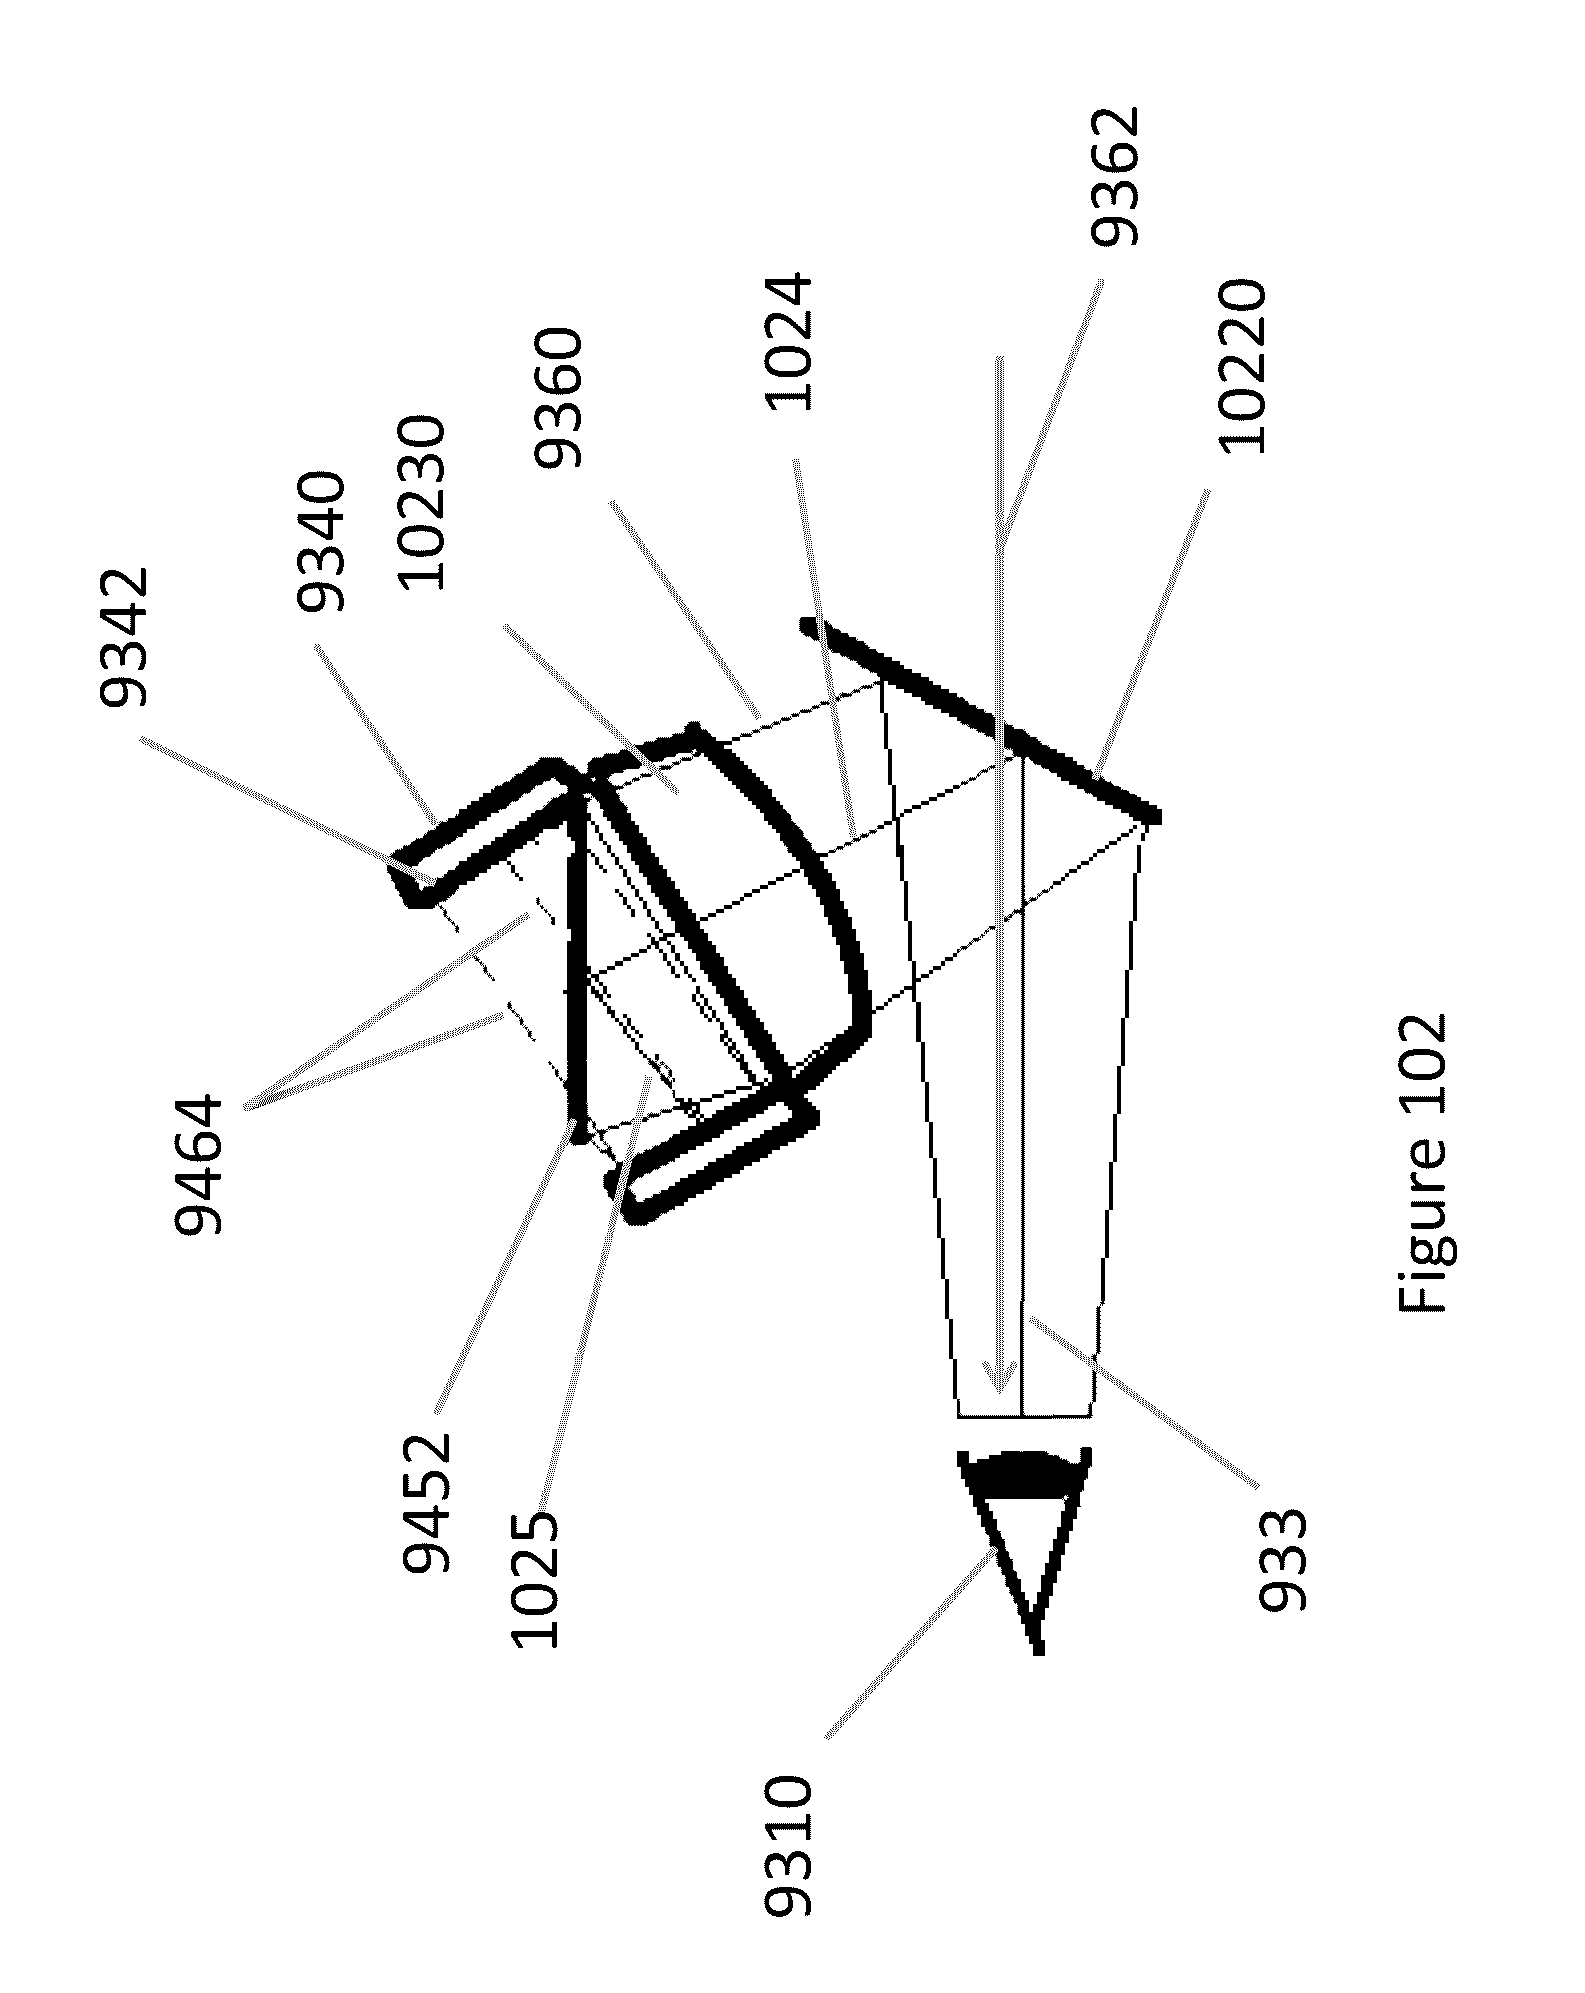 patent us 9 684 172 b2 Fire Suppression Sprinkler Systems patent images